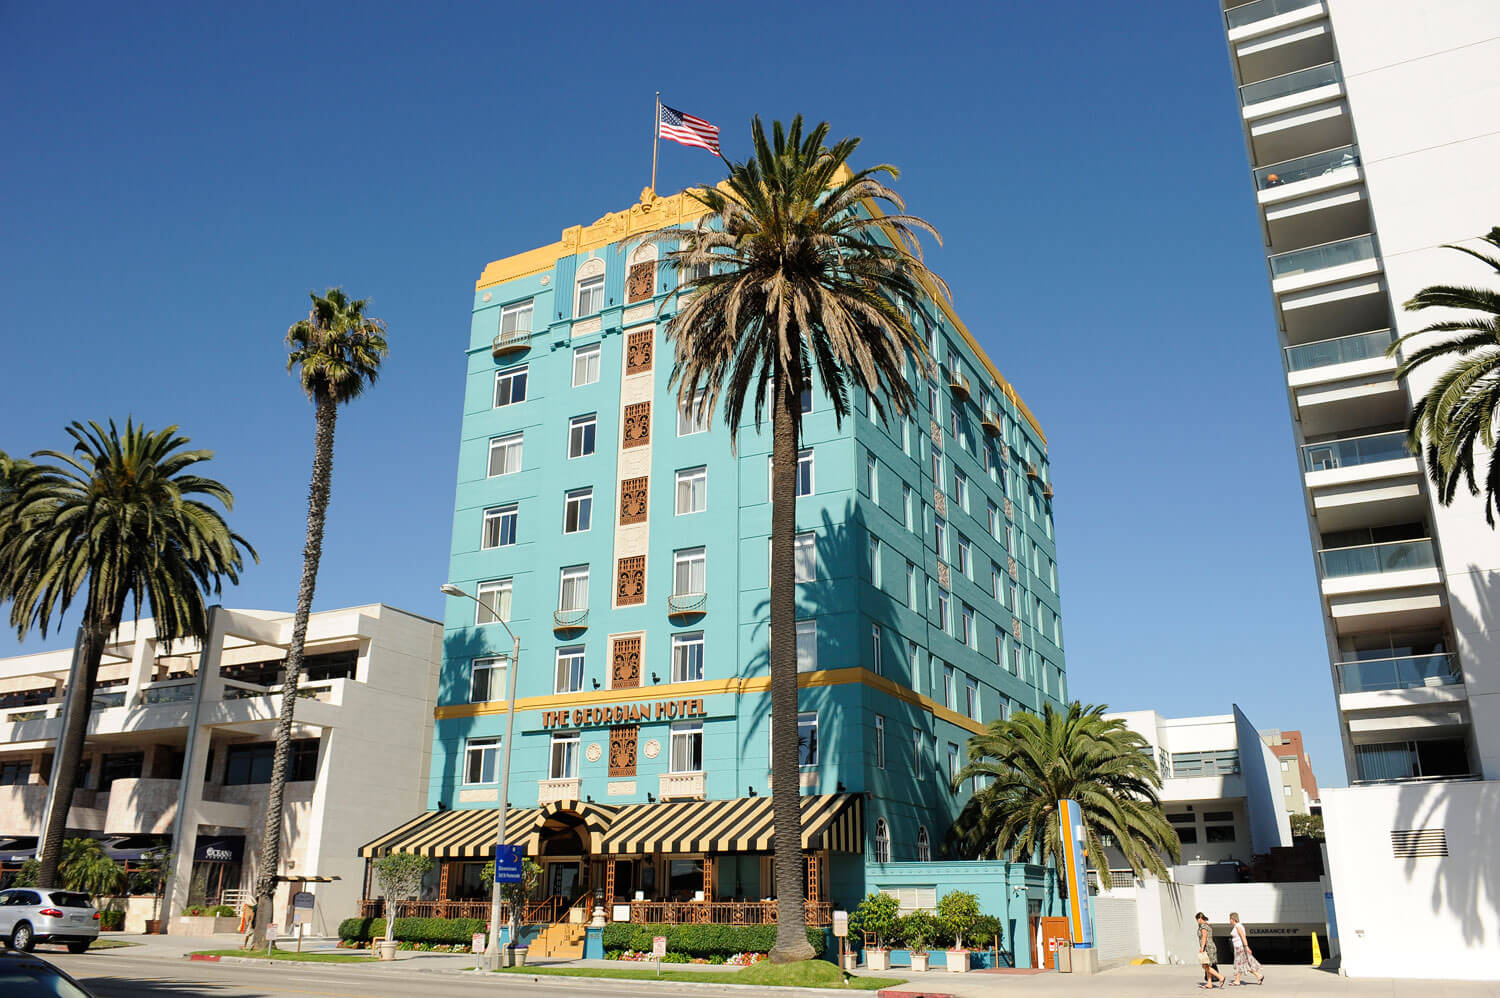 The Georgian Hotel Santa Monica